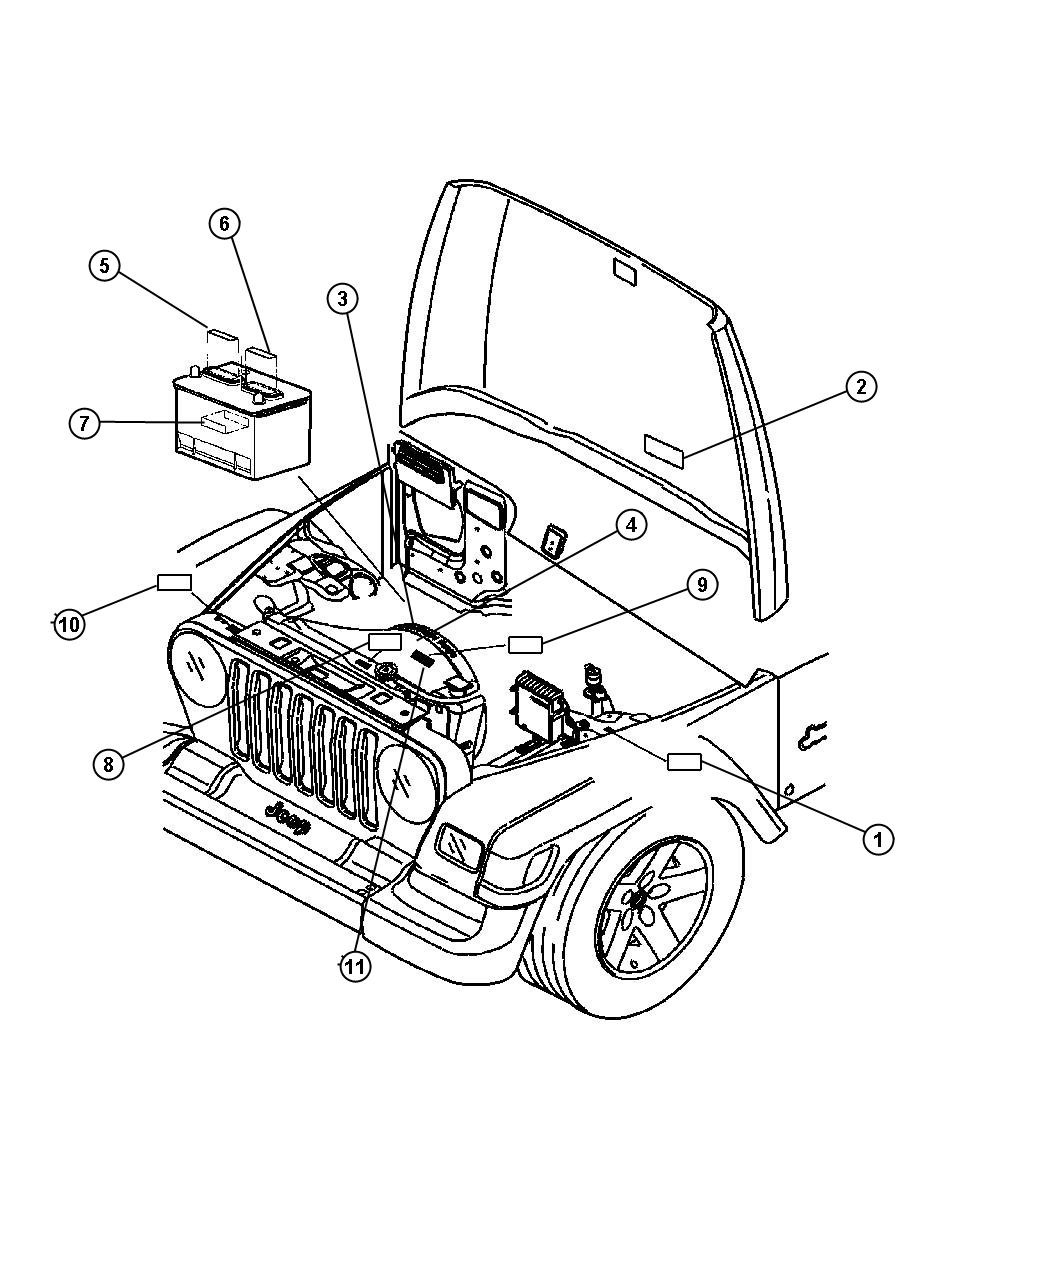 I on 2005 Jeep Wrangler Air Conditioning Diagram